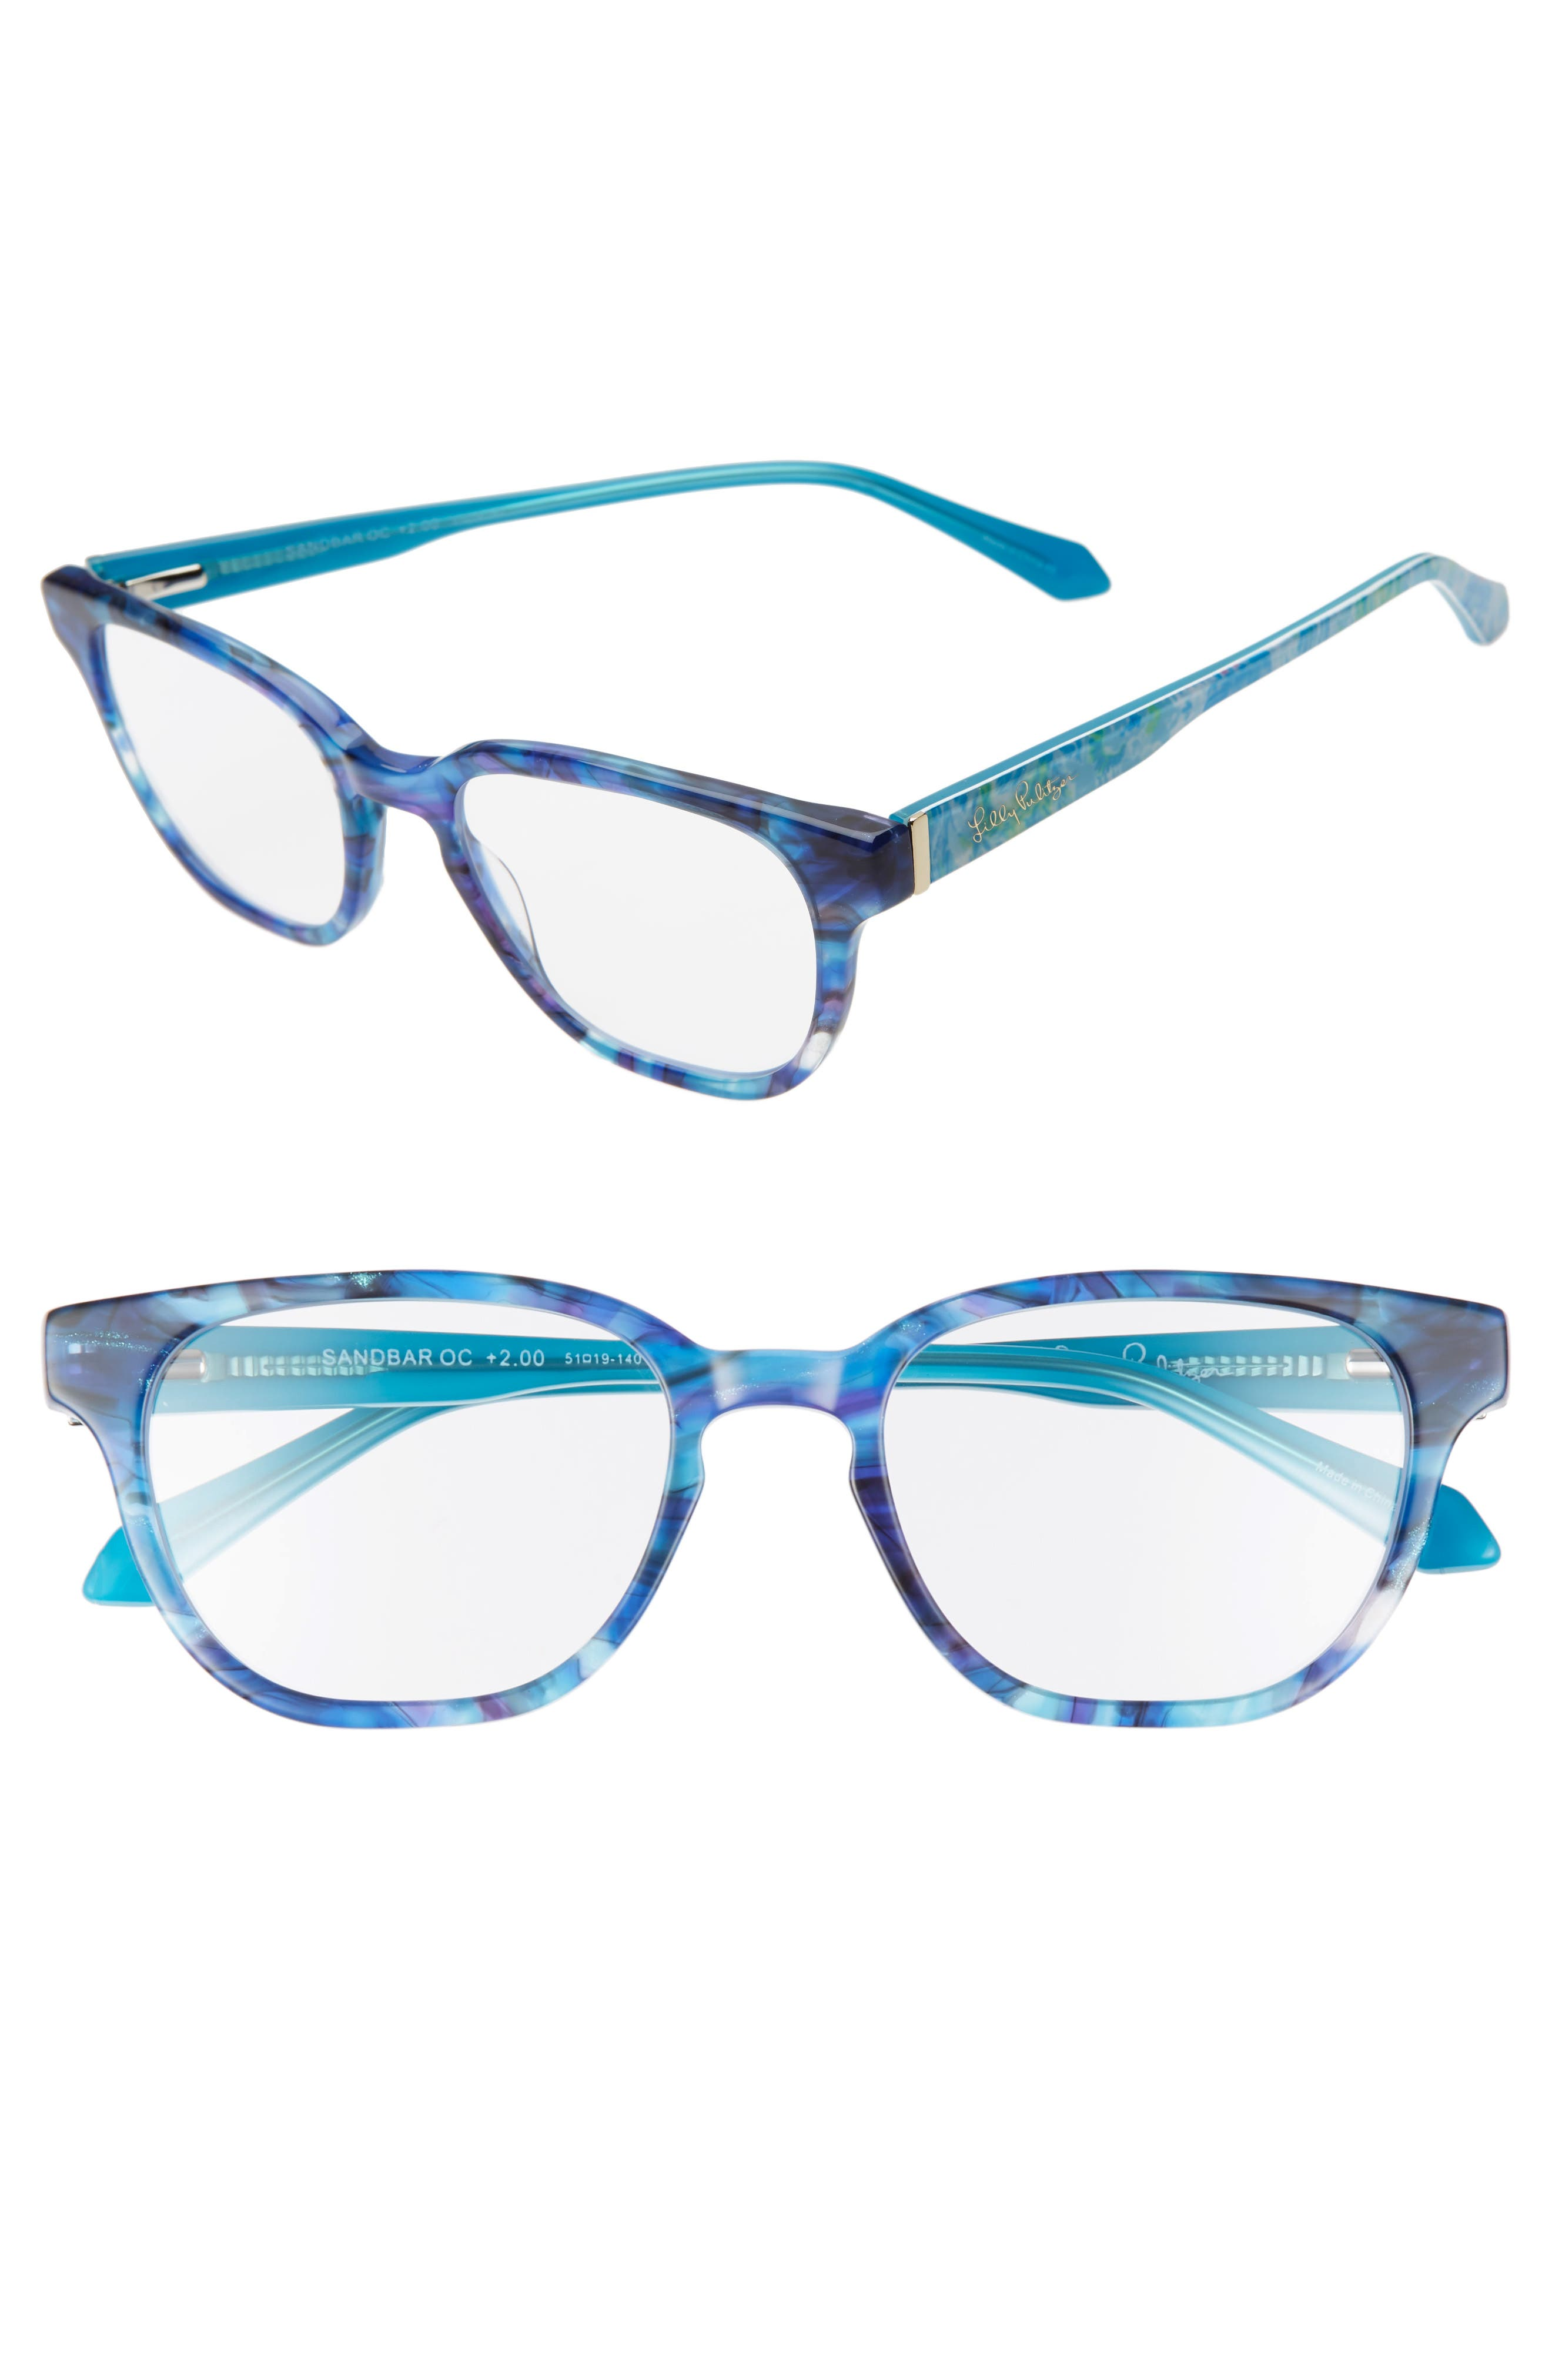 Grab a book and get ready for a day lounging on the sand with these reading glasses in a classically chic silhouette. Style Name: Lilly Pulitzer Sandbar 51mm Reading Glasses. Style Number: 5984857. Available in stores.